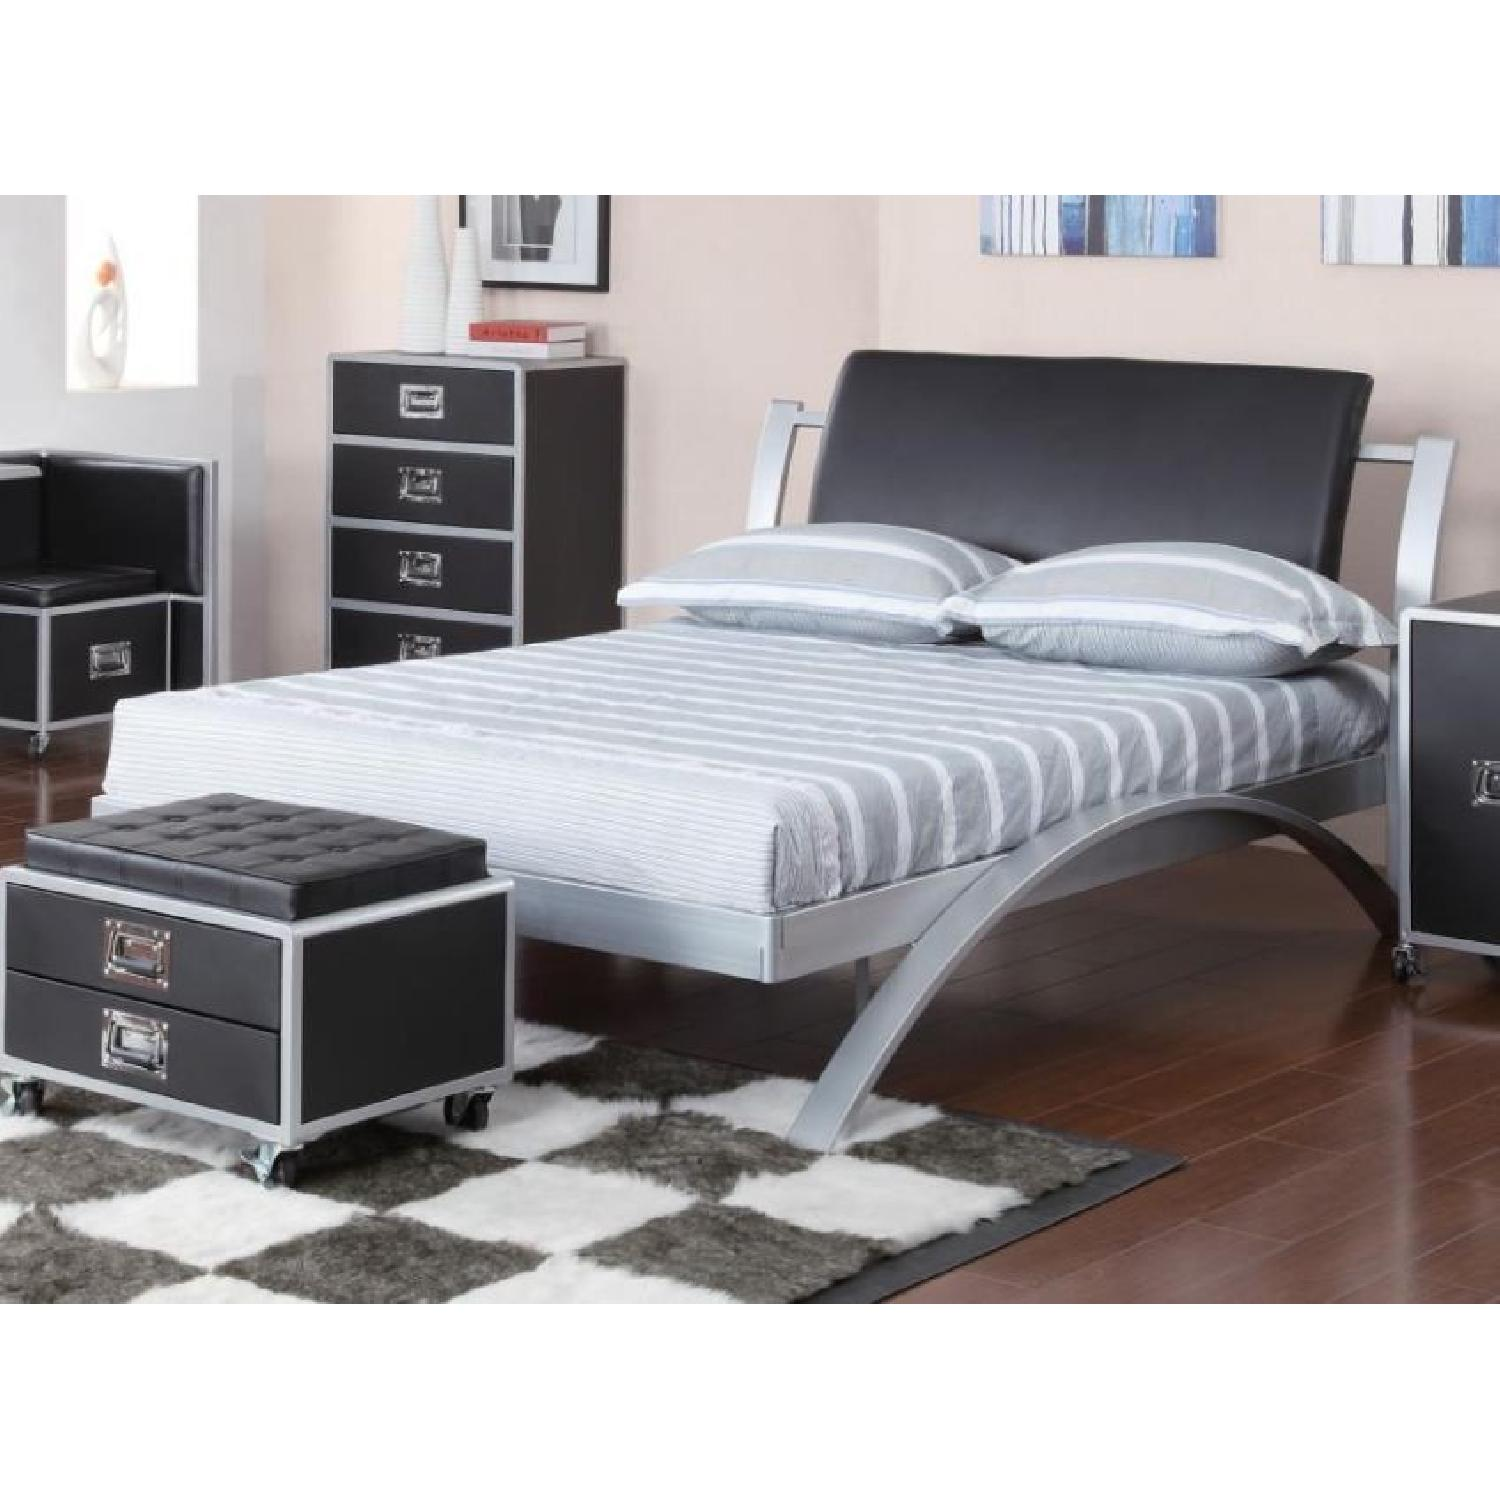 Full Size Metal Platform Bed in Contemporary Industrial Desi - image-1